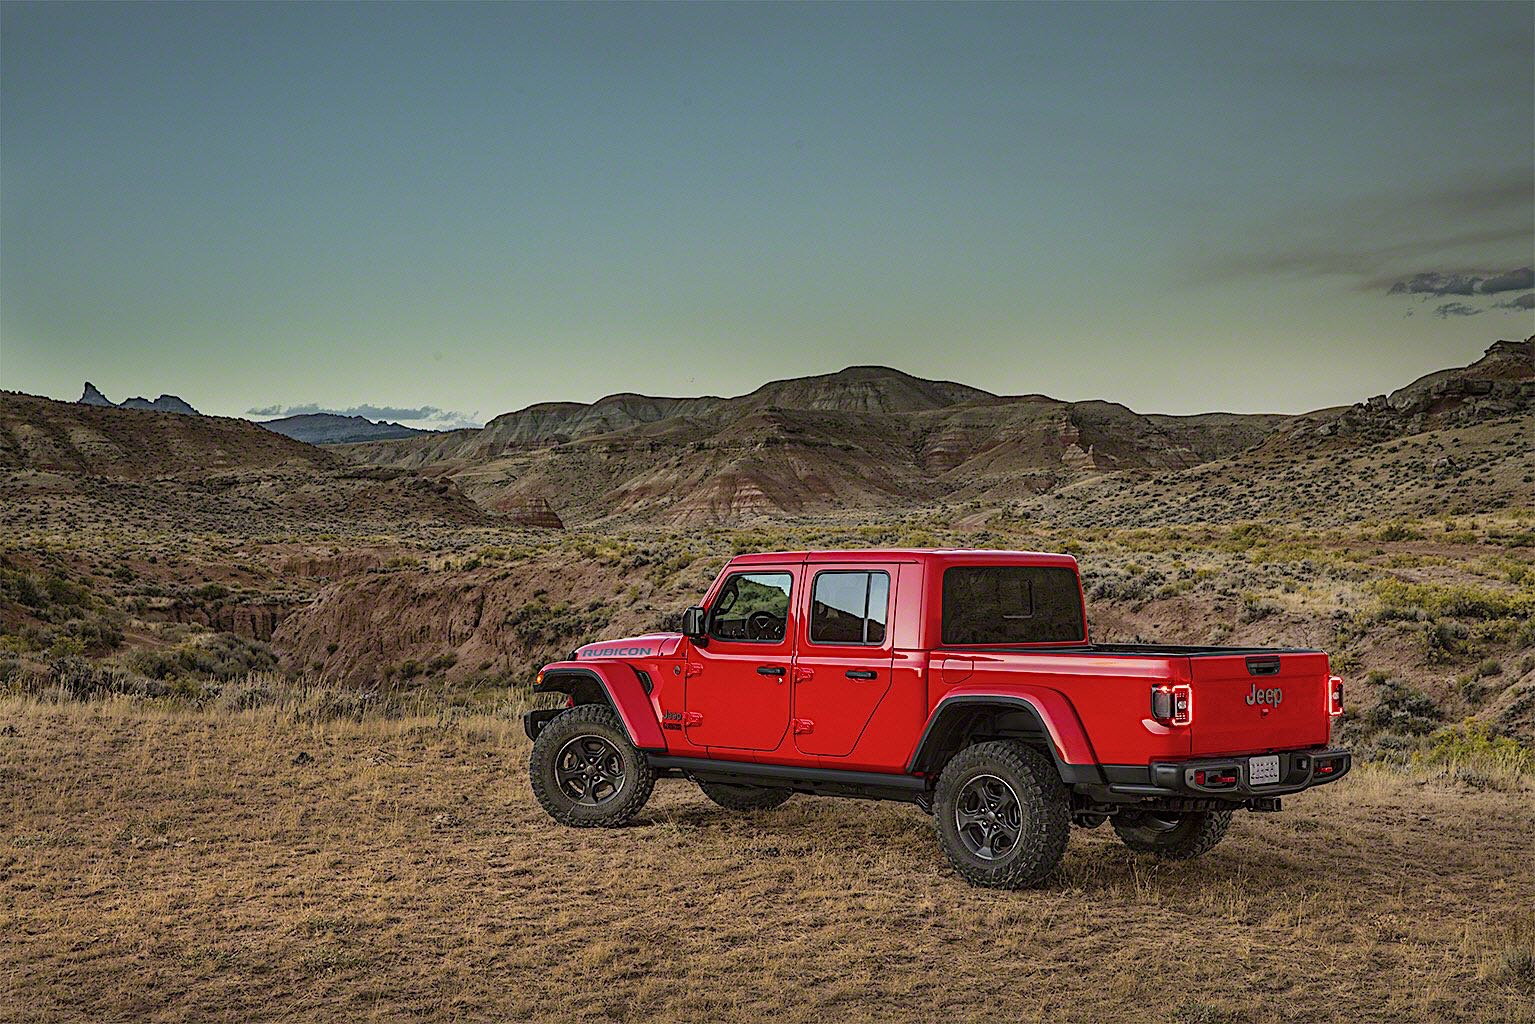 Best Year For Jeep Wrangler >> 2020 Jeep Gladiator Pickup Truck: Everything You Need to Know, and Then Some - The Drive